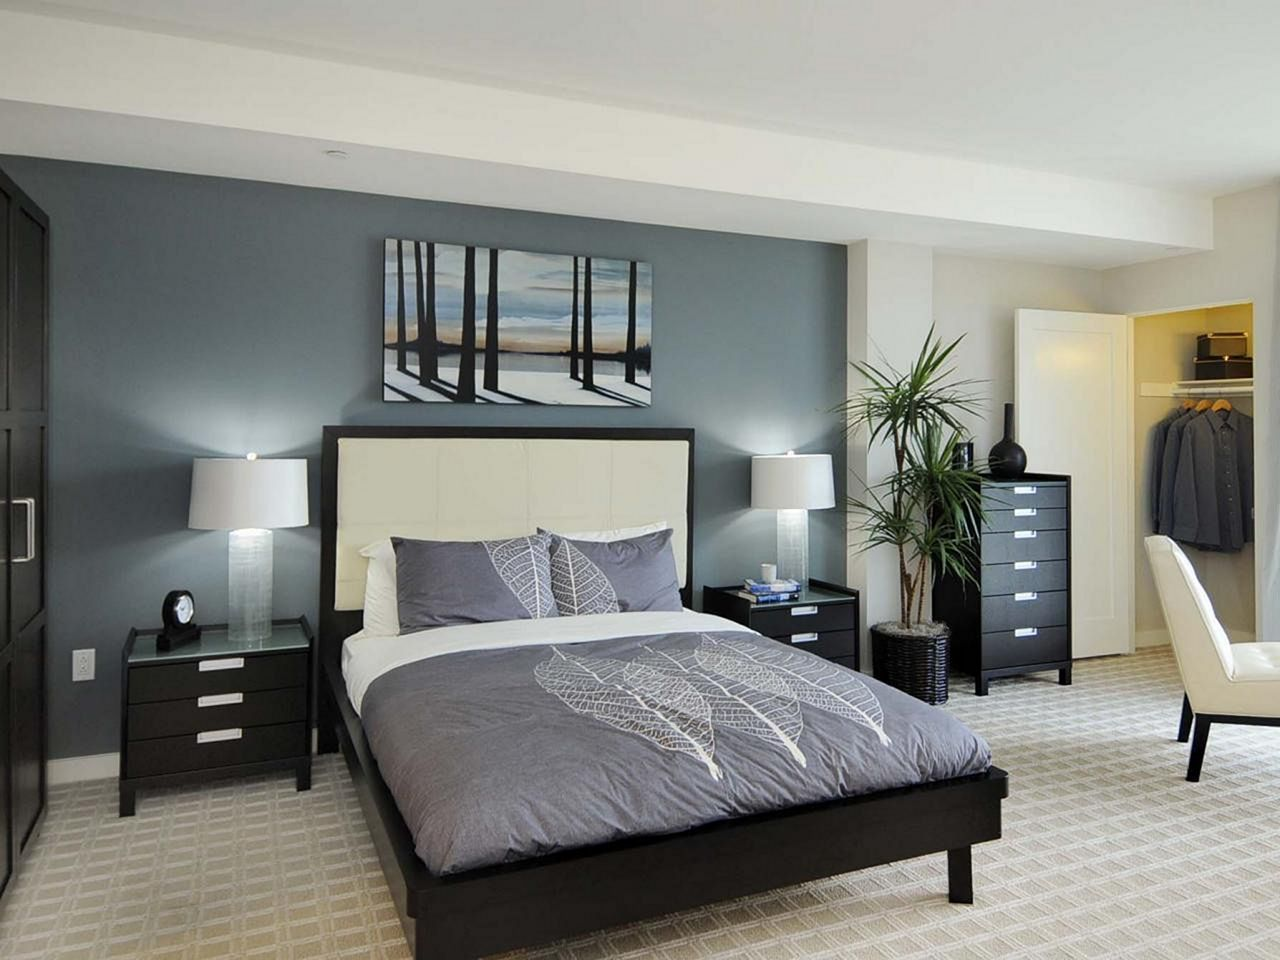 12+ Bedroom Paint Colors Ideas That Soothing To Make Your ...